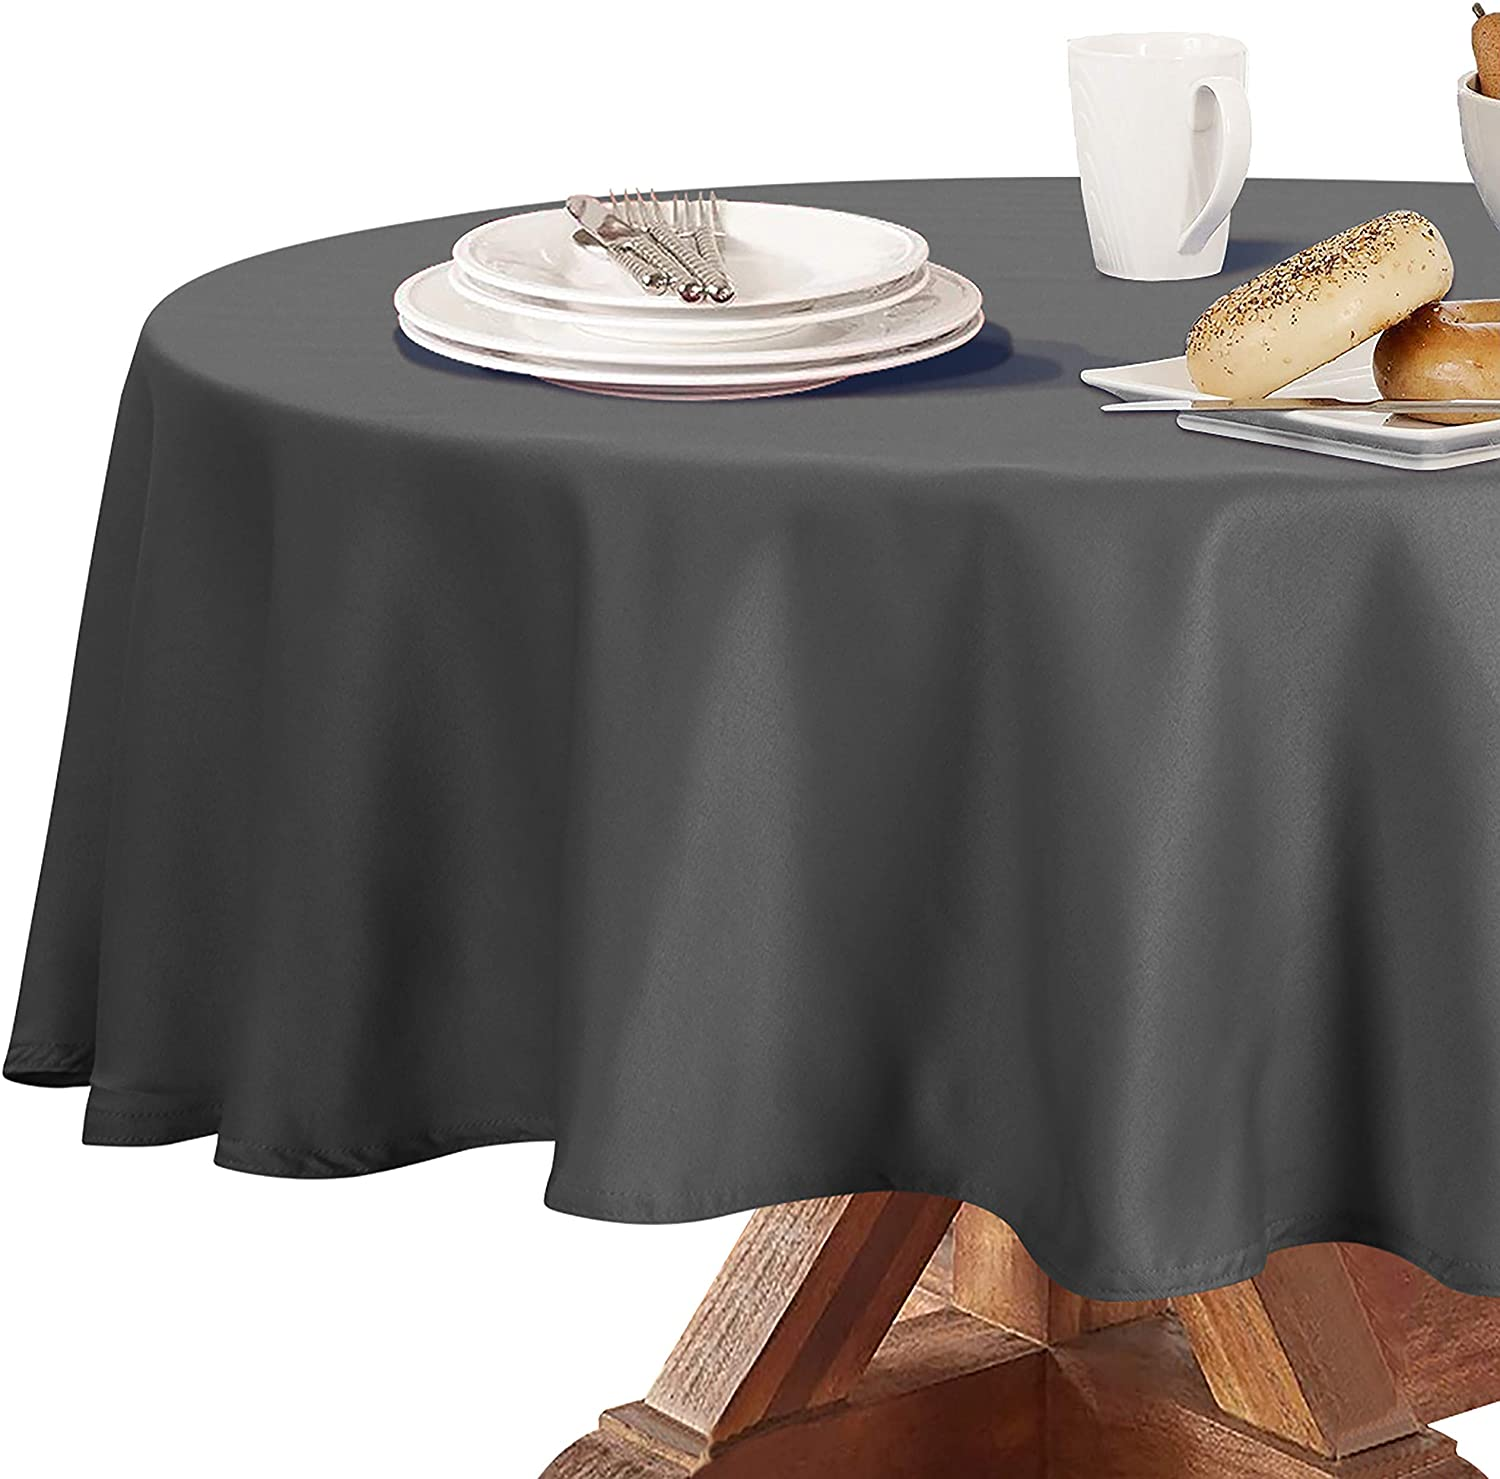 Obstal 210GSM Round Table Cloth, Water Resistance Microfiber Tablecloth, Decorative Fabric Circular Table Cover for Outdoor and Indoor Use (Grey, 70 Inch Diameter)